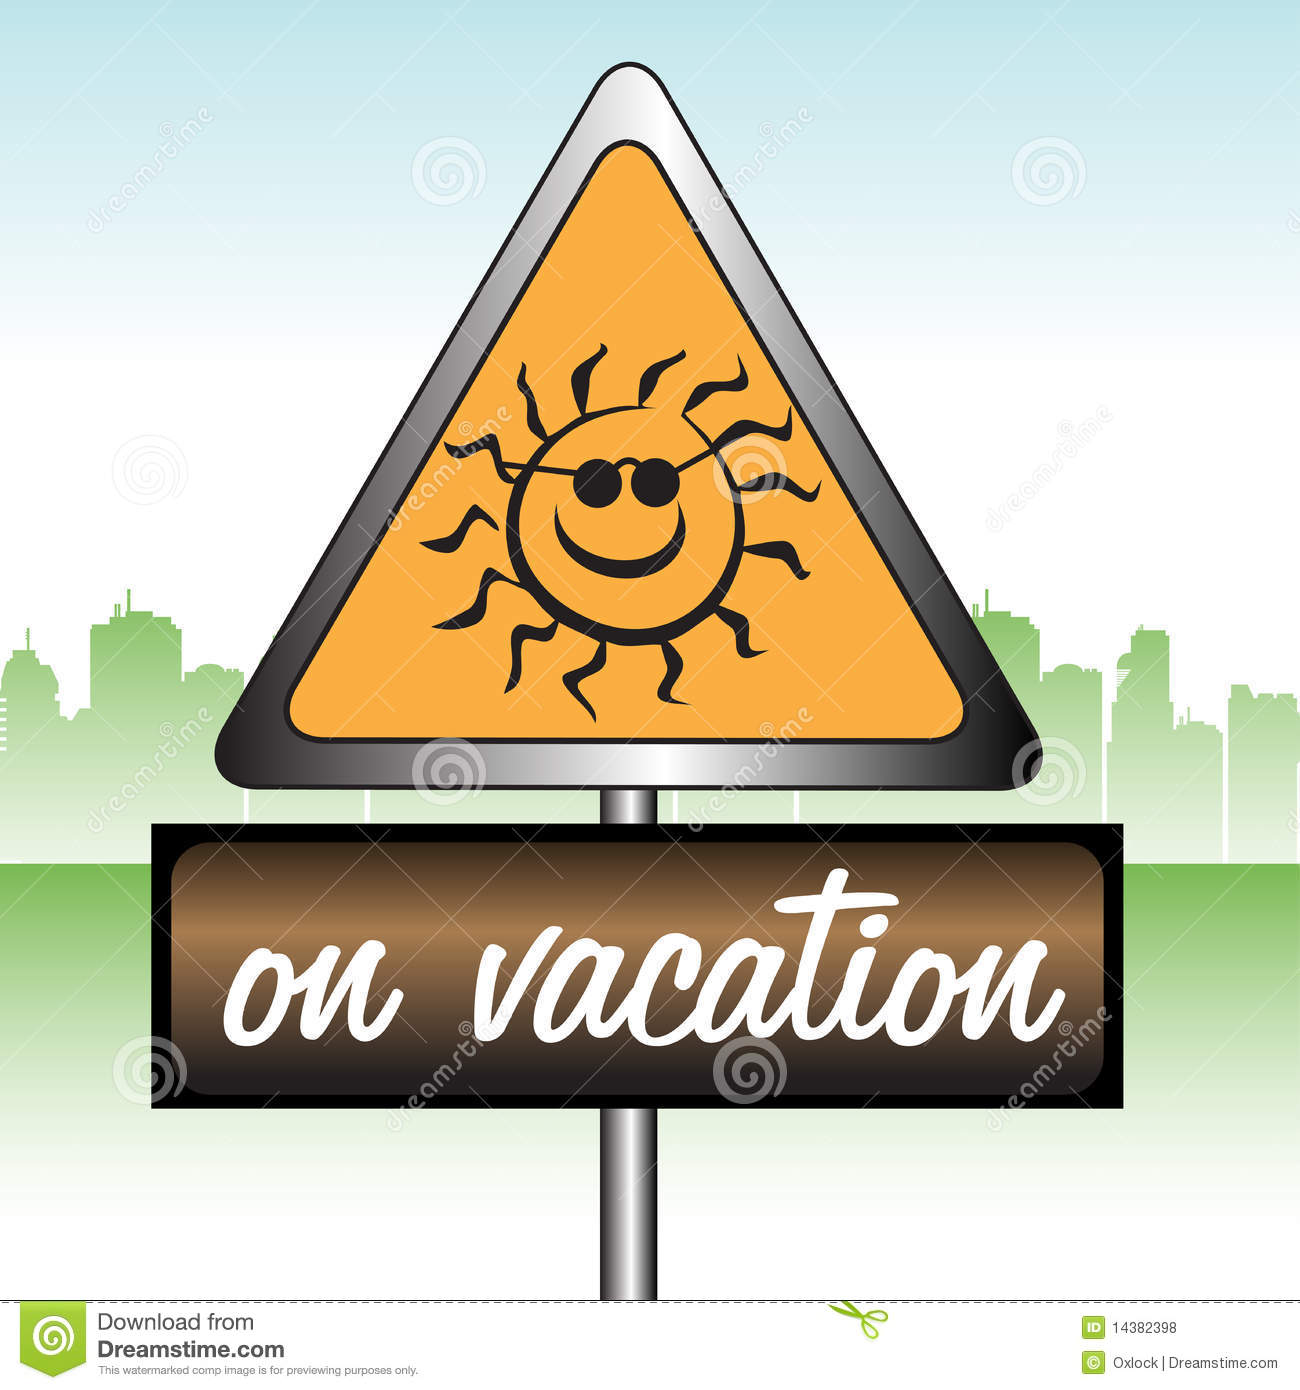 On vacation sign